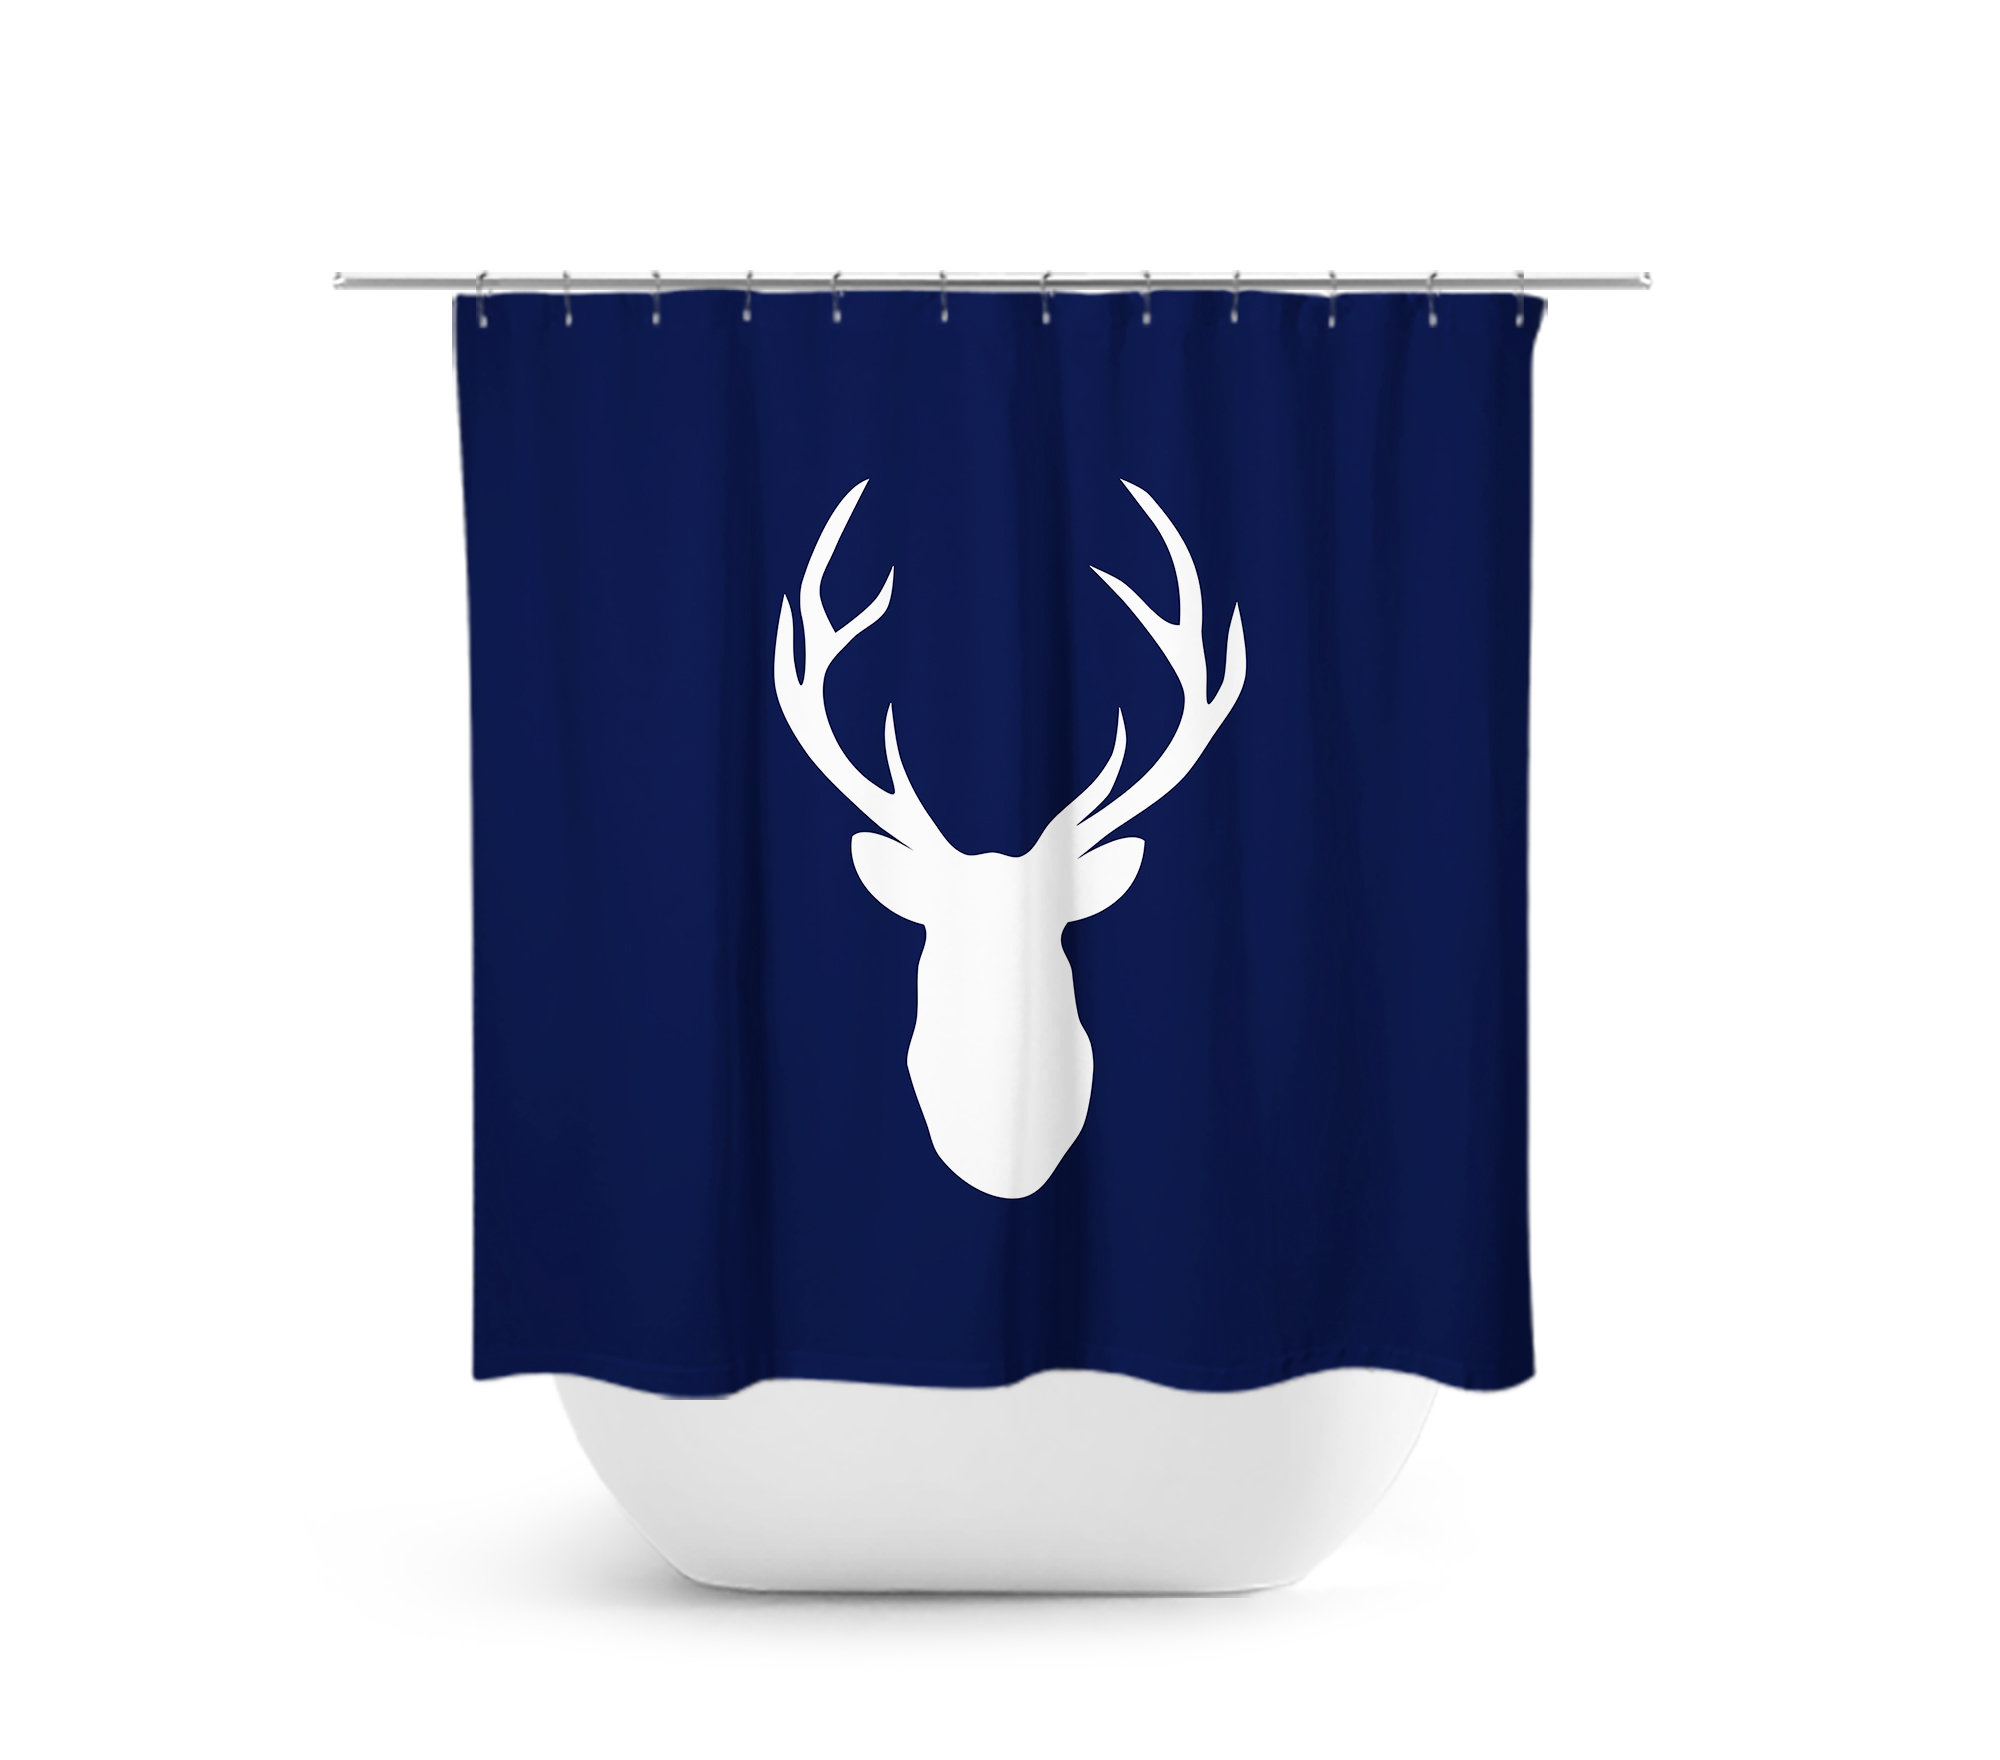 Blue Shower Curtain Hunting Lodge Decor Deer Head Antler